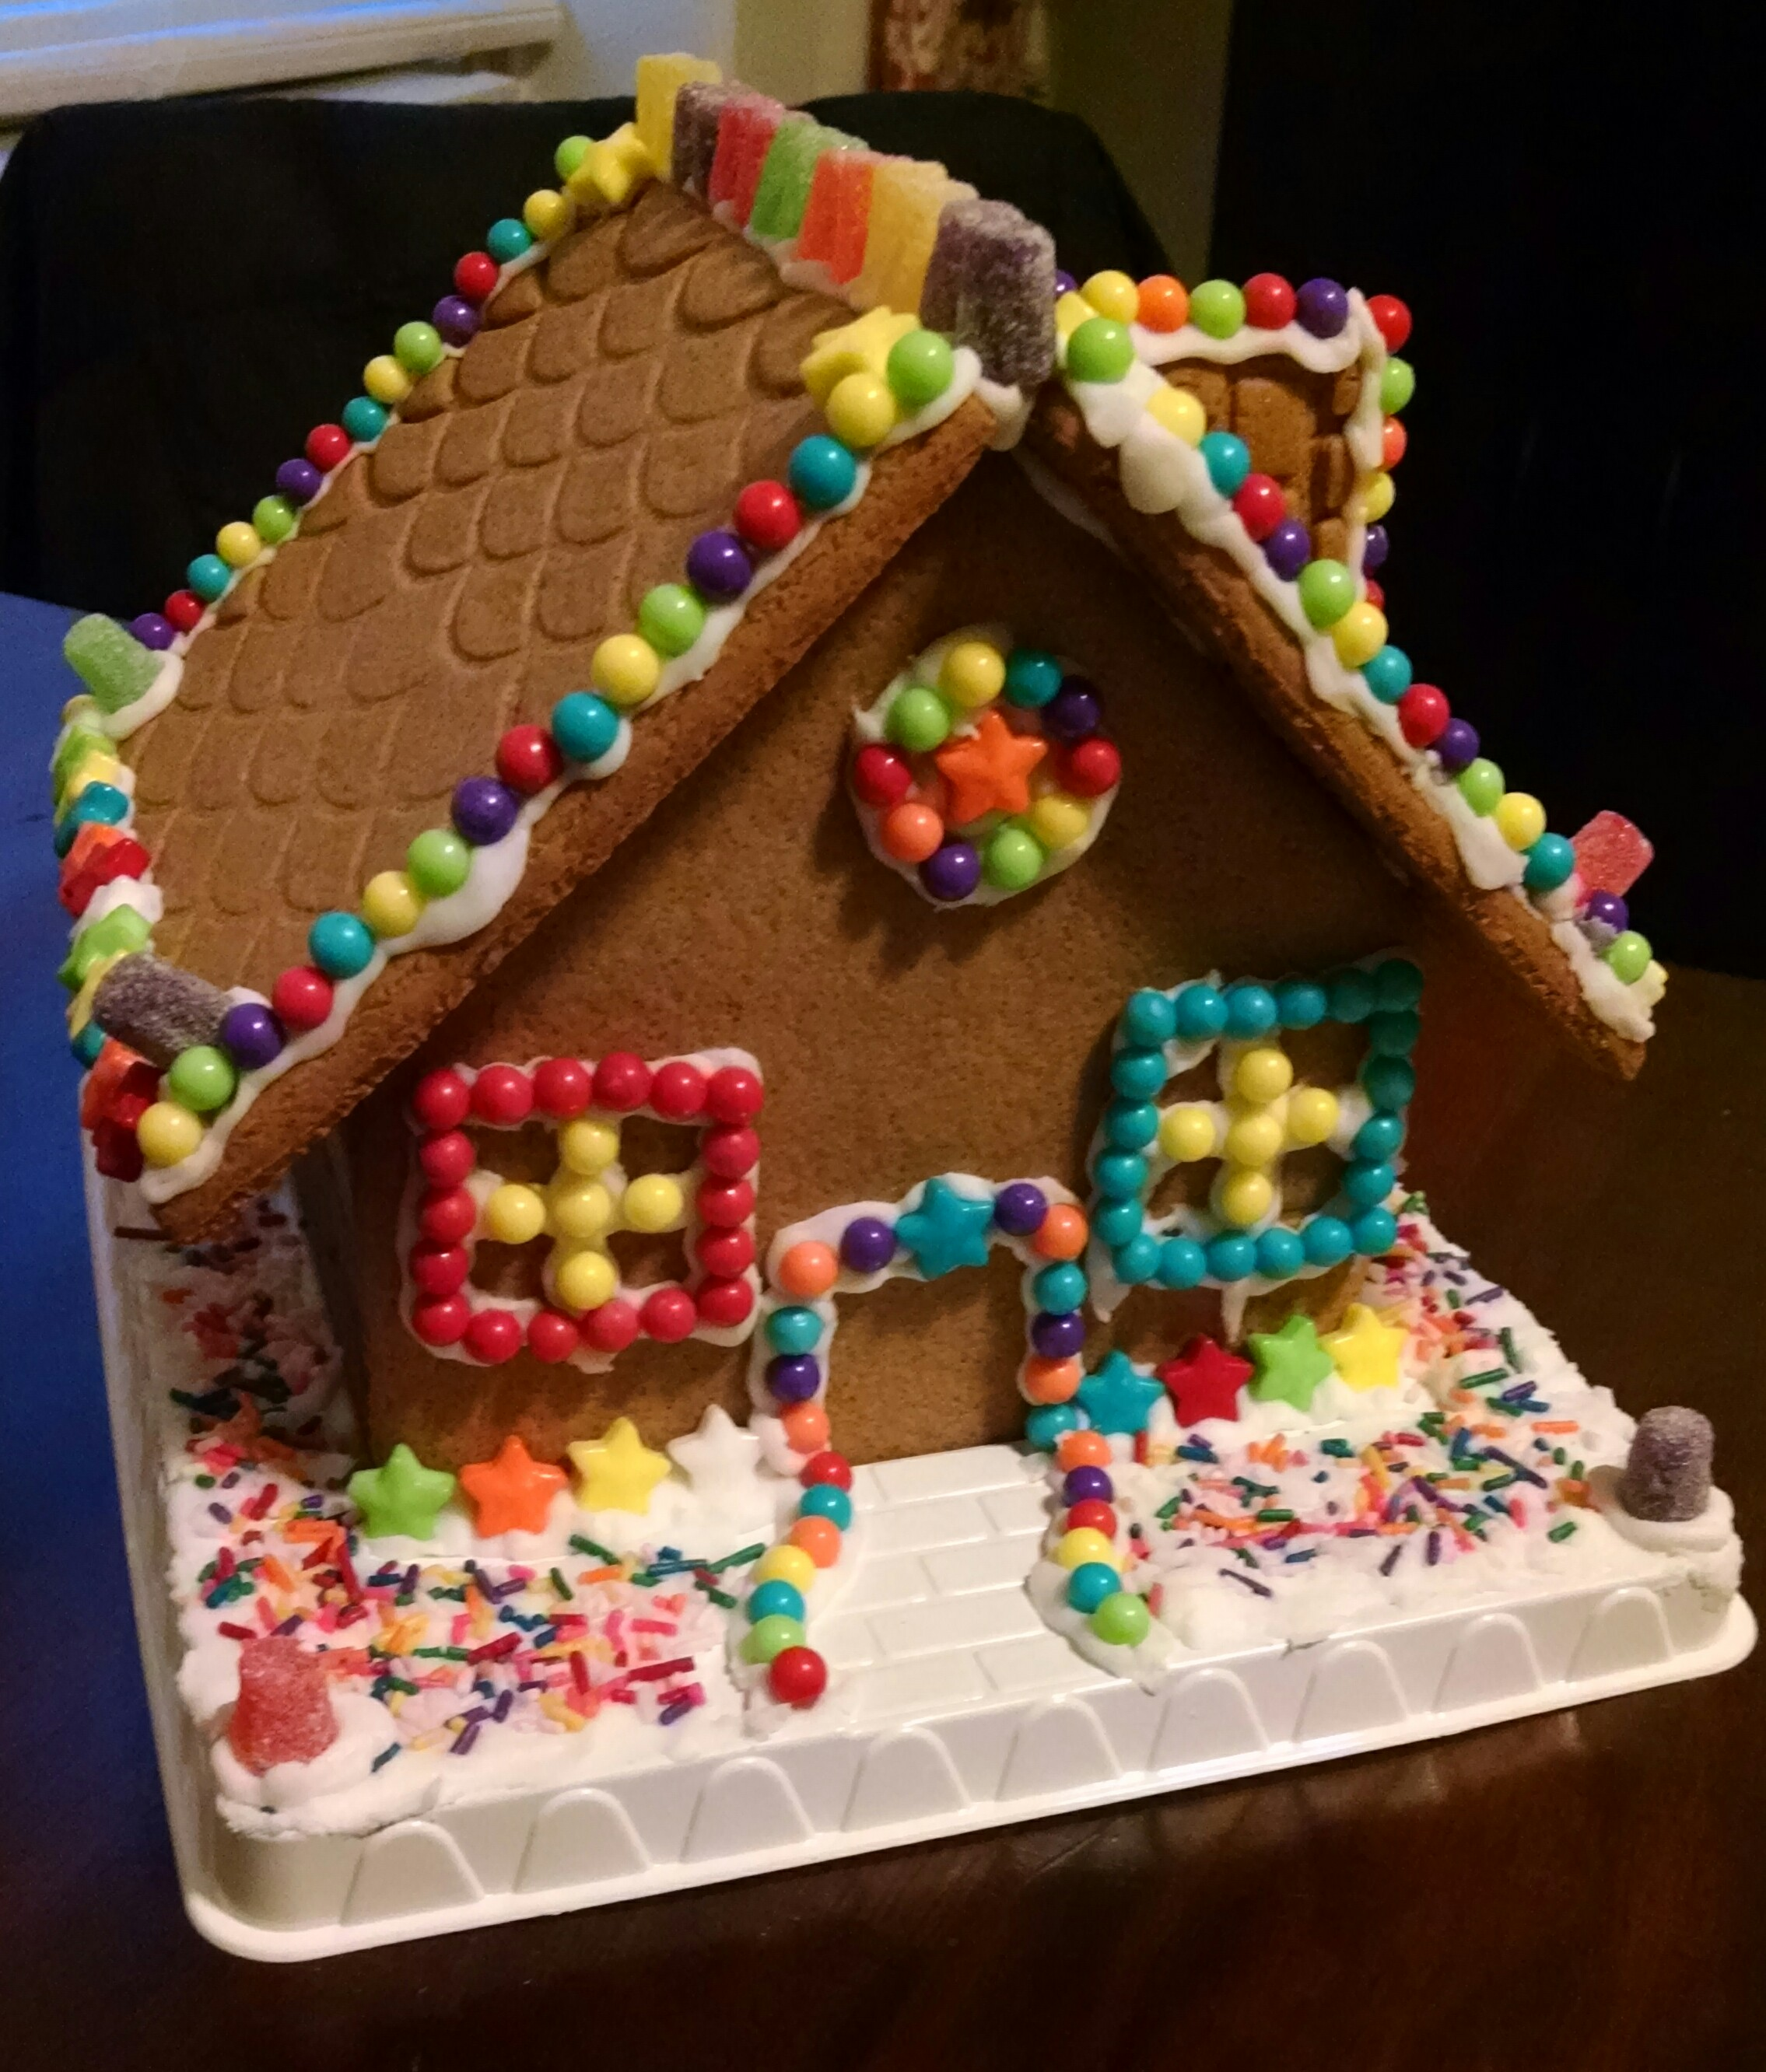 Me, Jaime and Emerson's Winter Holiday Gingerbread House.